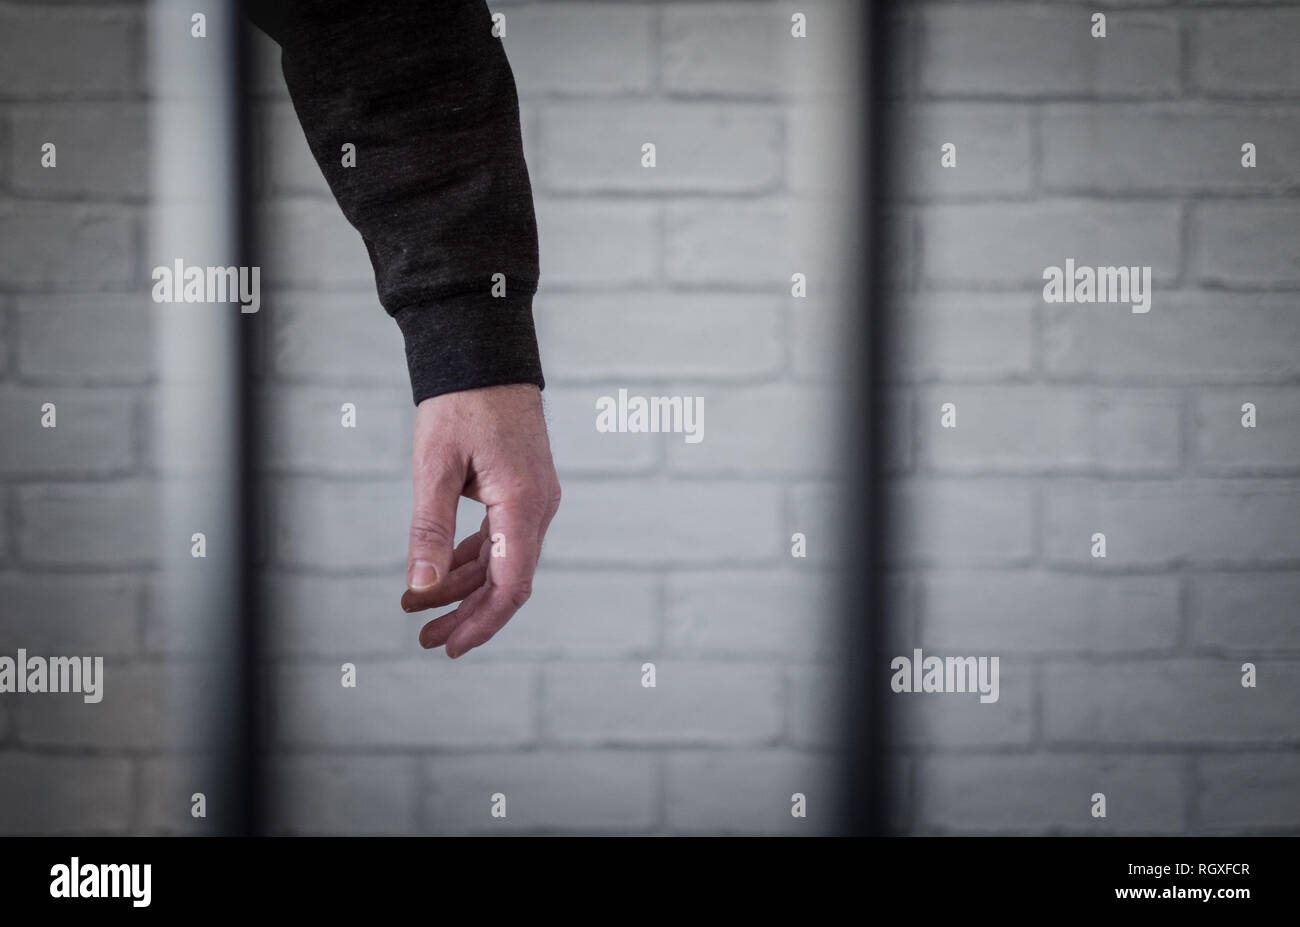 A prisoners arm hanging limp behind bars. Pictured posed by model to illustrate prison death and suicide issues - Stock Image